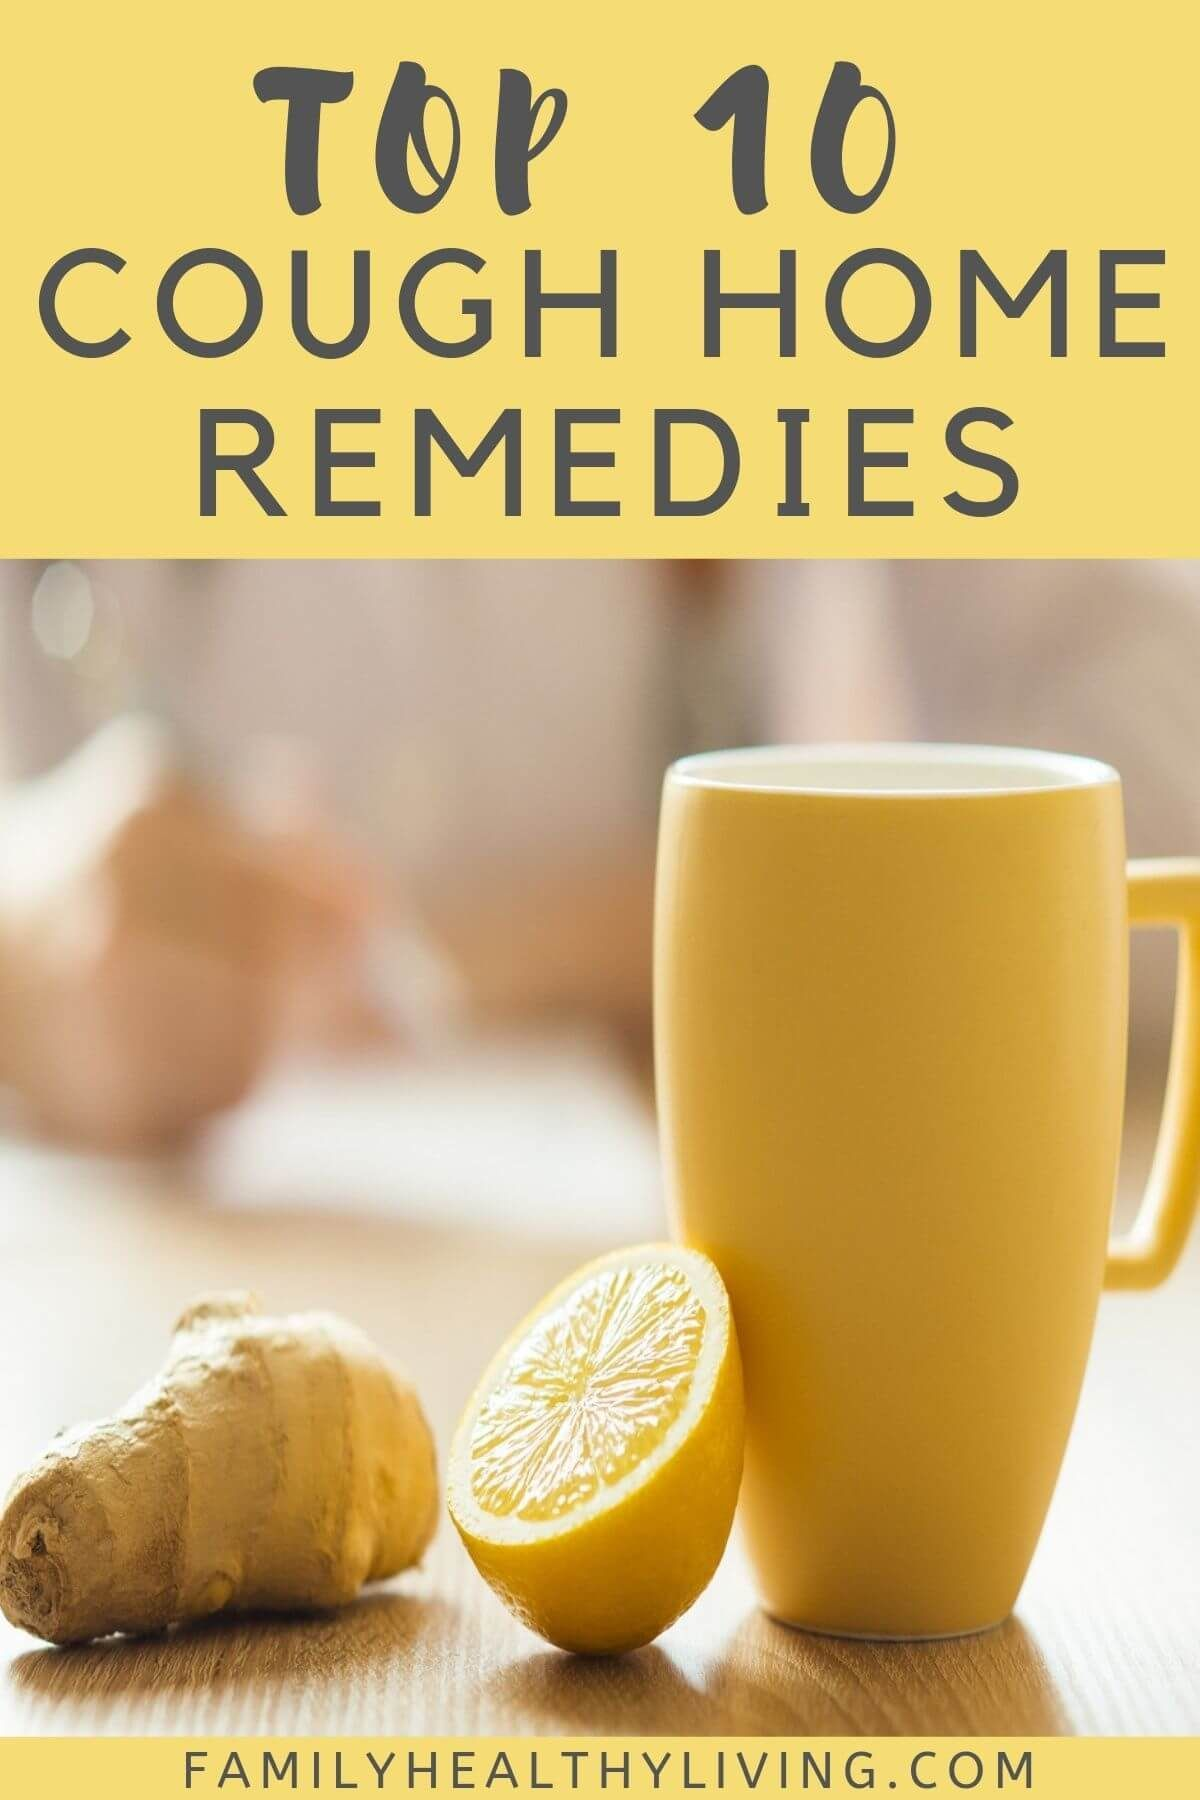 83e5310a4d42a439e991256e00615aeb - How To Get Rid Of A Child S Cough Quickly